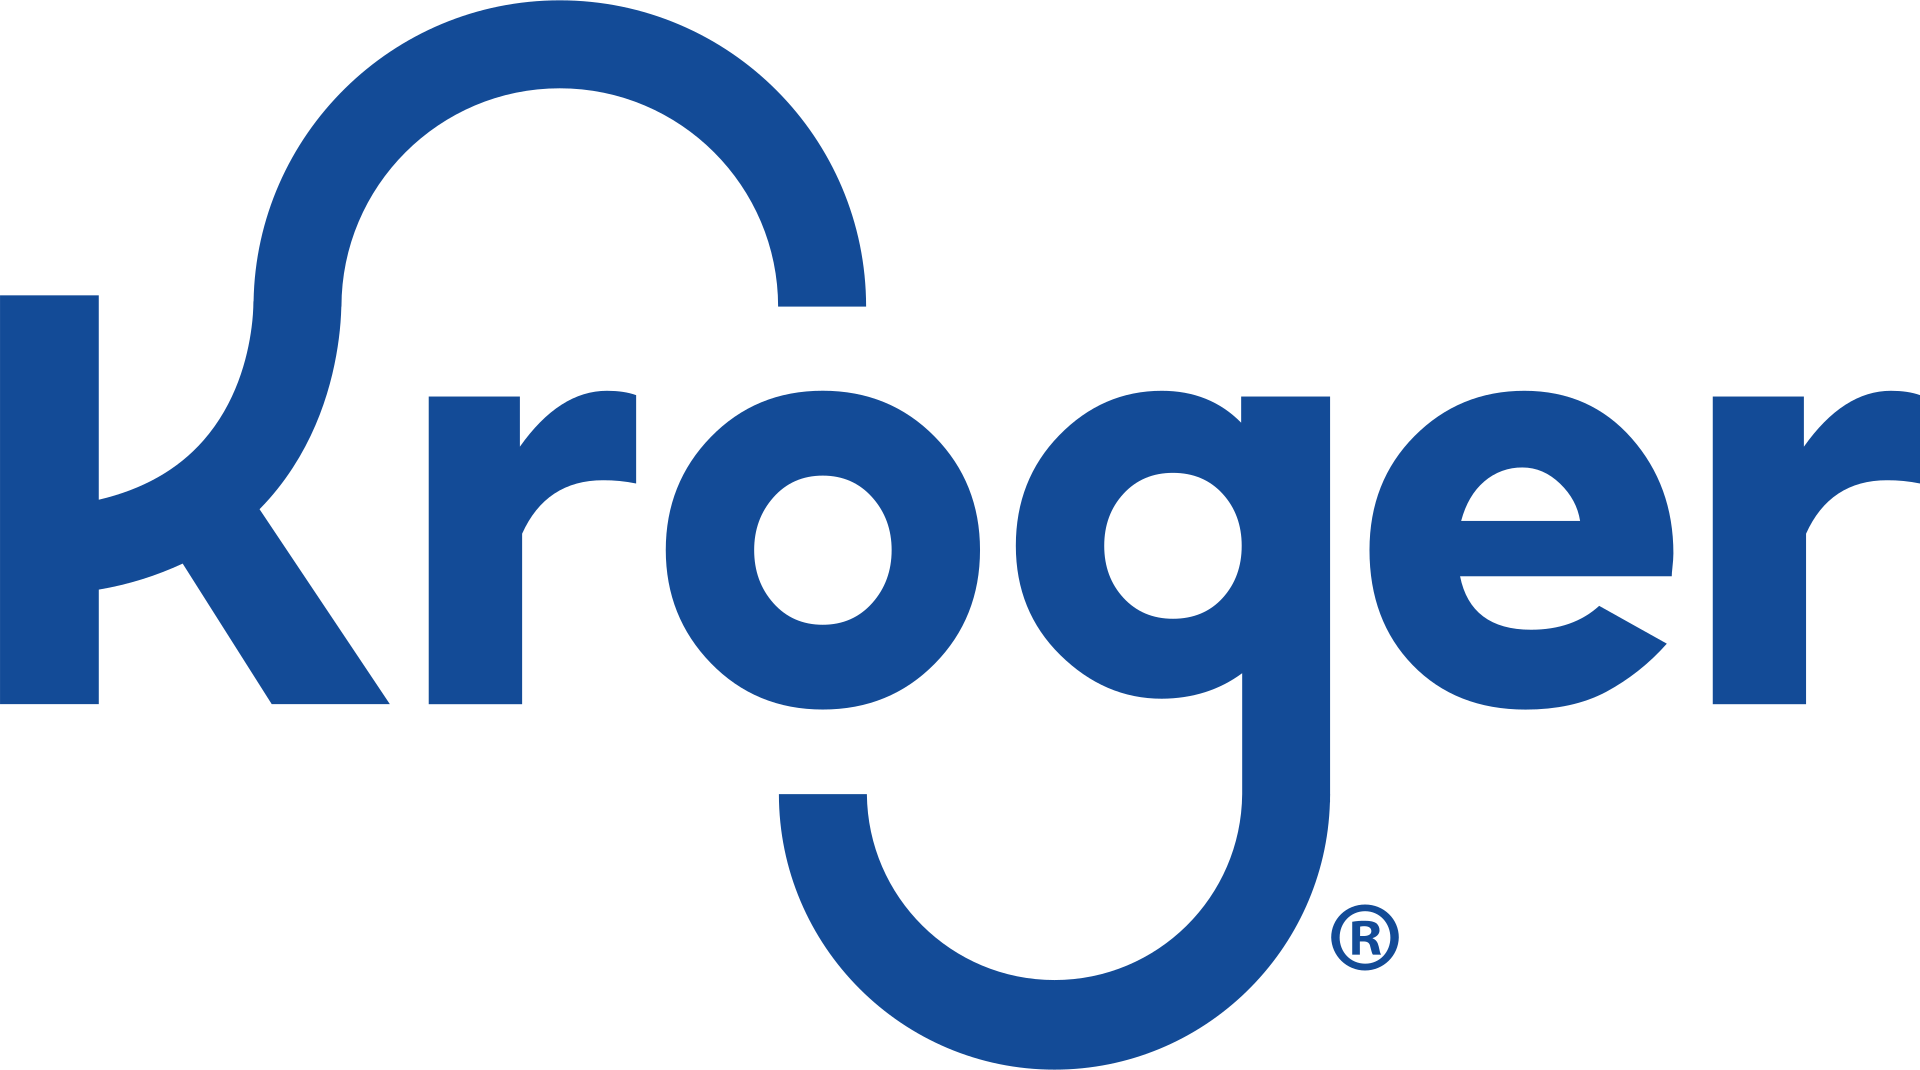 Upcoming Kroger 4x fuel points on purchase of gift cards